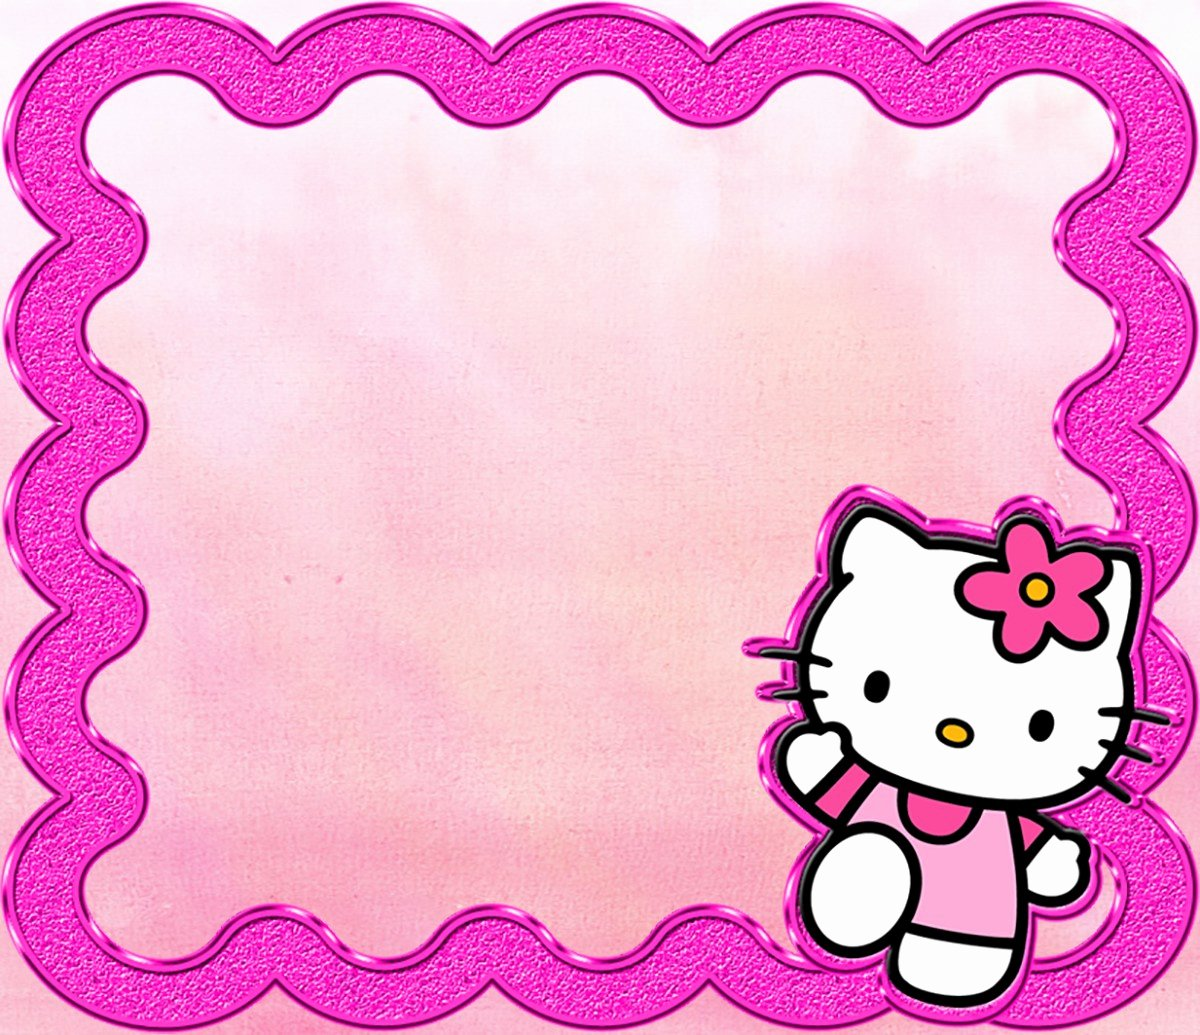 Hello Kitty Invite Template Lovely Hello Kitty Free Printable Invitation Templates